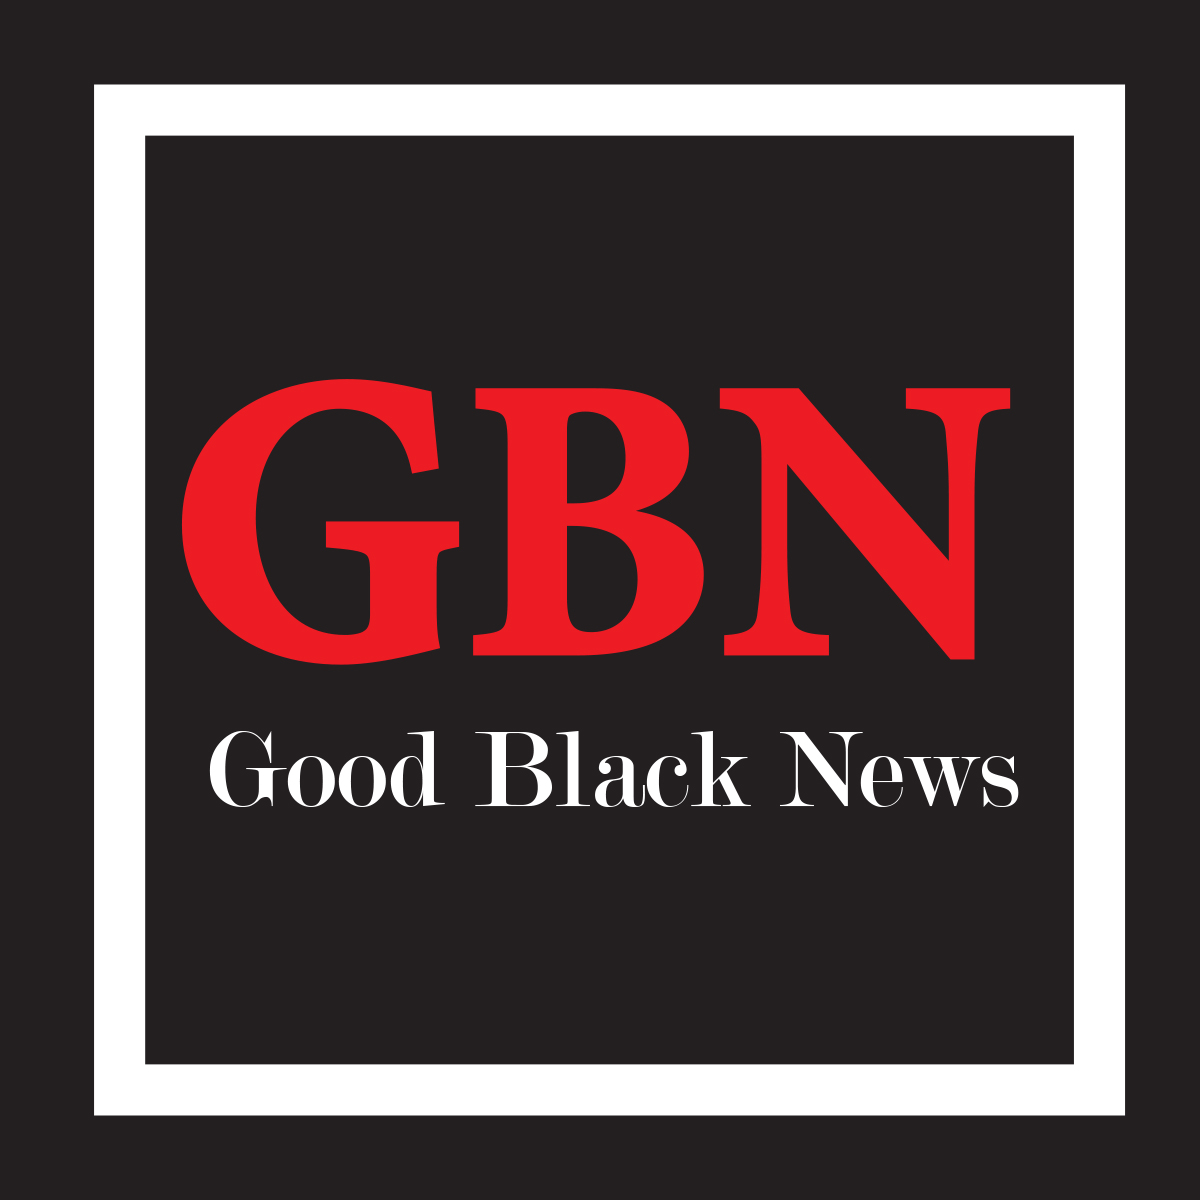 Nine Years Ago Today: Good Black News Was Founded